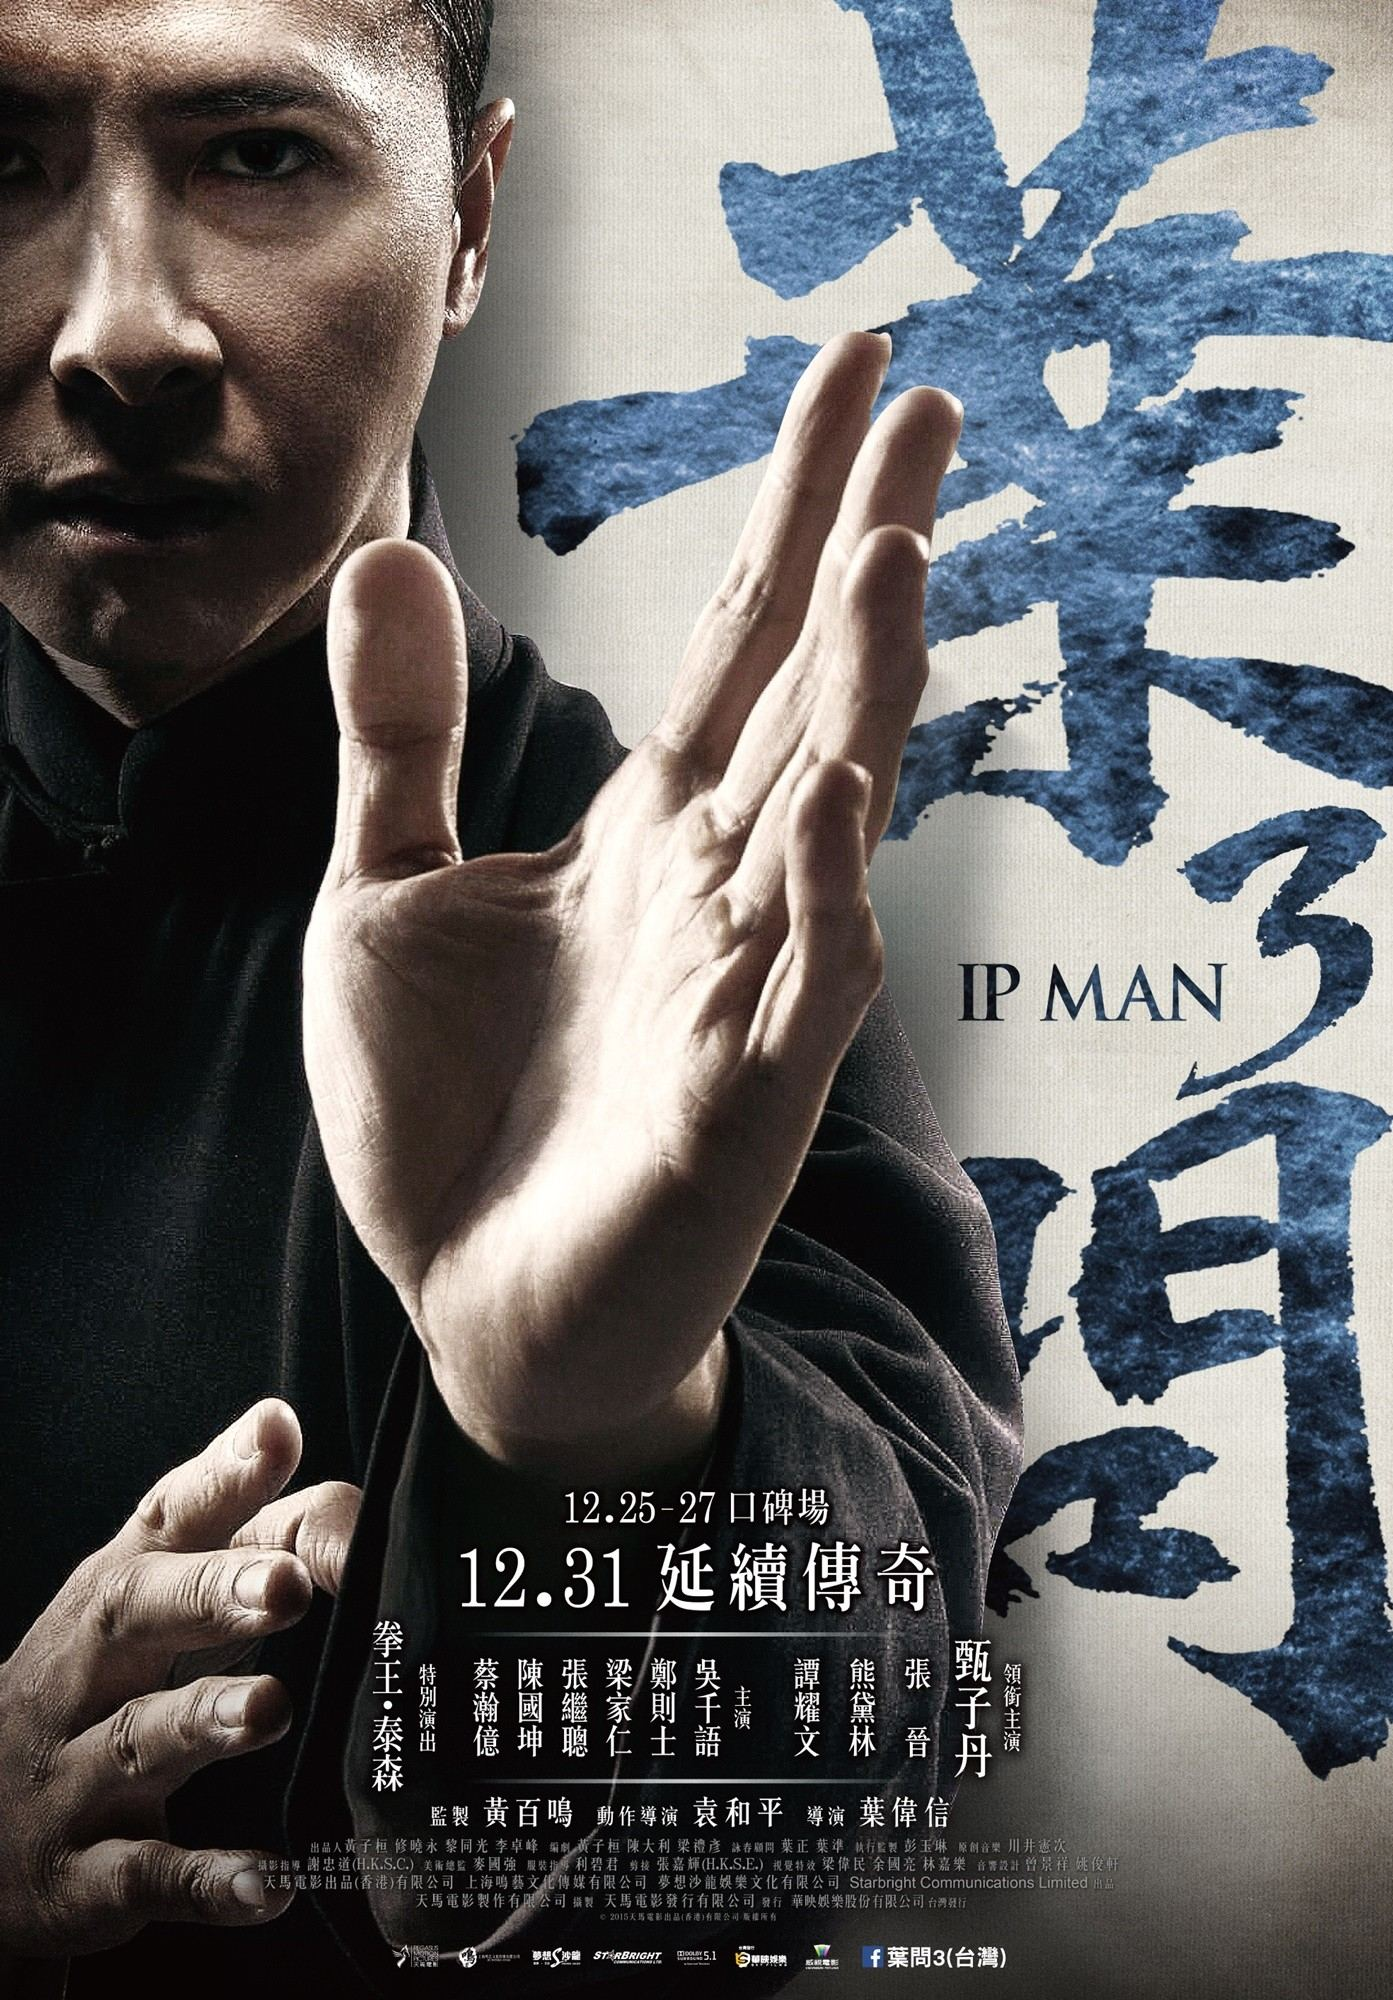 Ip Man 3 (2016) Pictures, Trailer, Reviews, News, DVD and ...